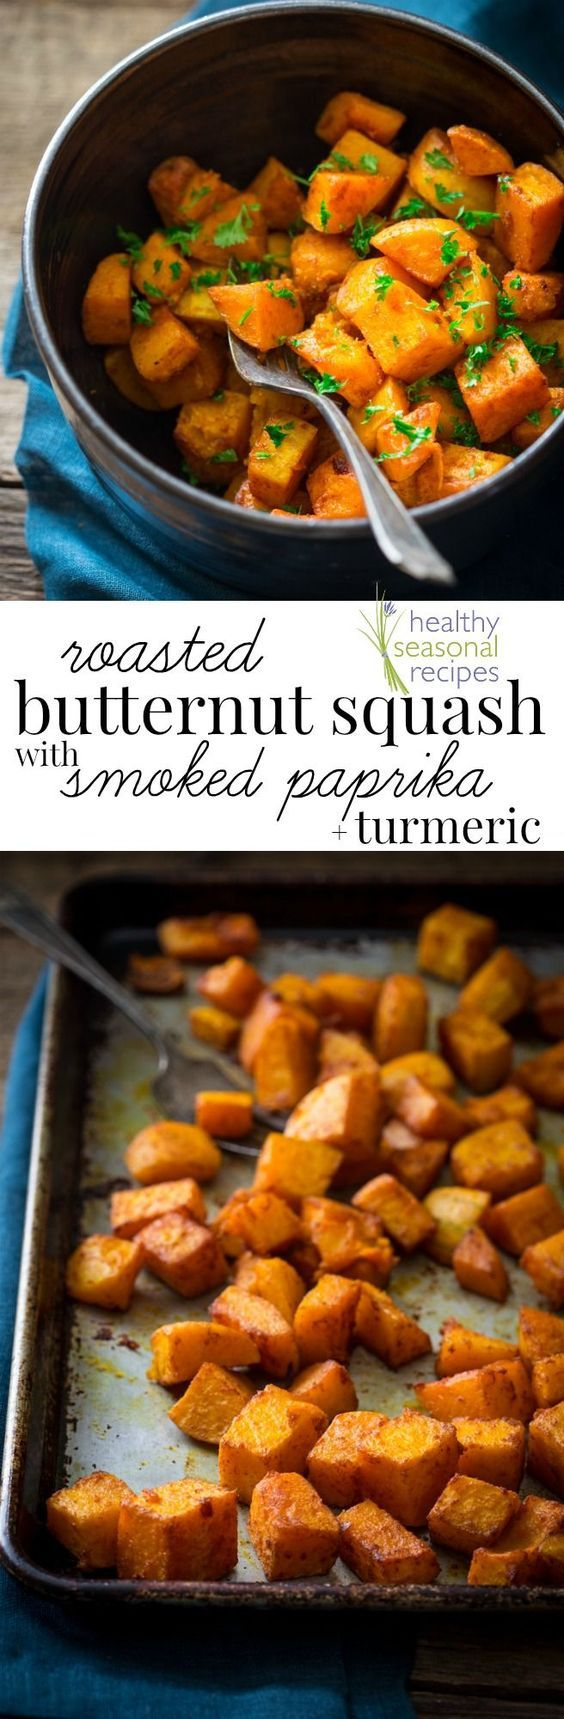 Roasted Butternut Squash With Smoked Paprika And Turmeric Vegan Recipe Recipes Healthy Recipes Butternut Recipes